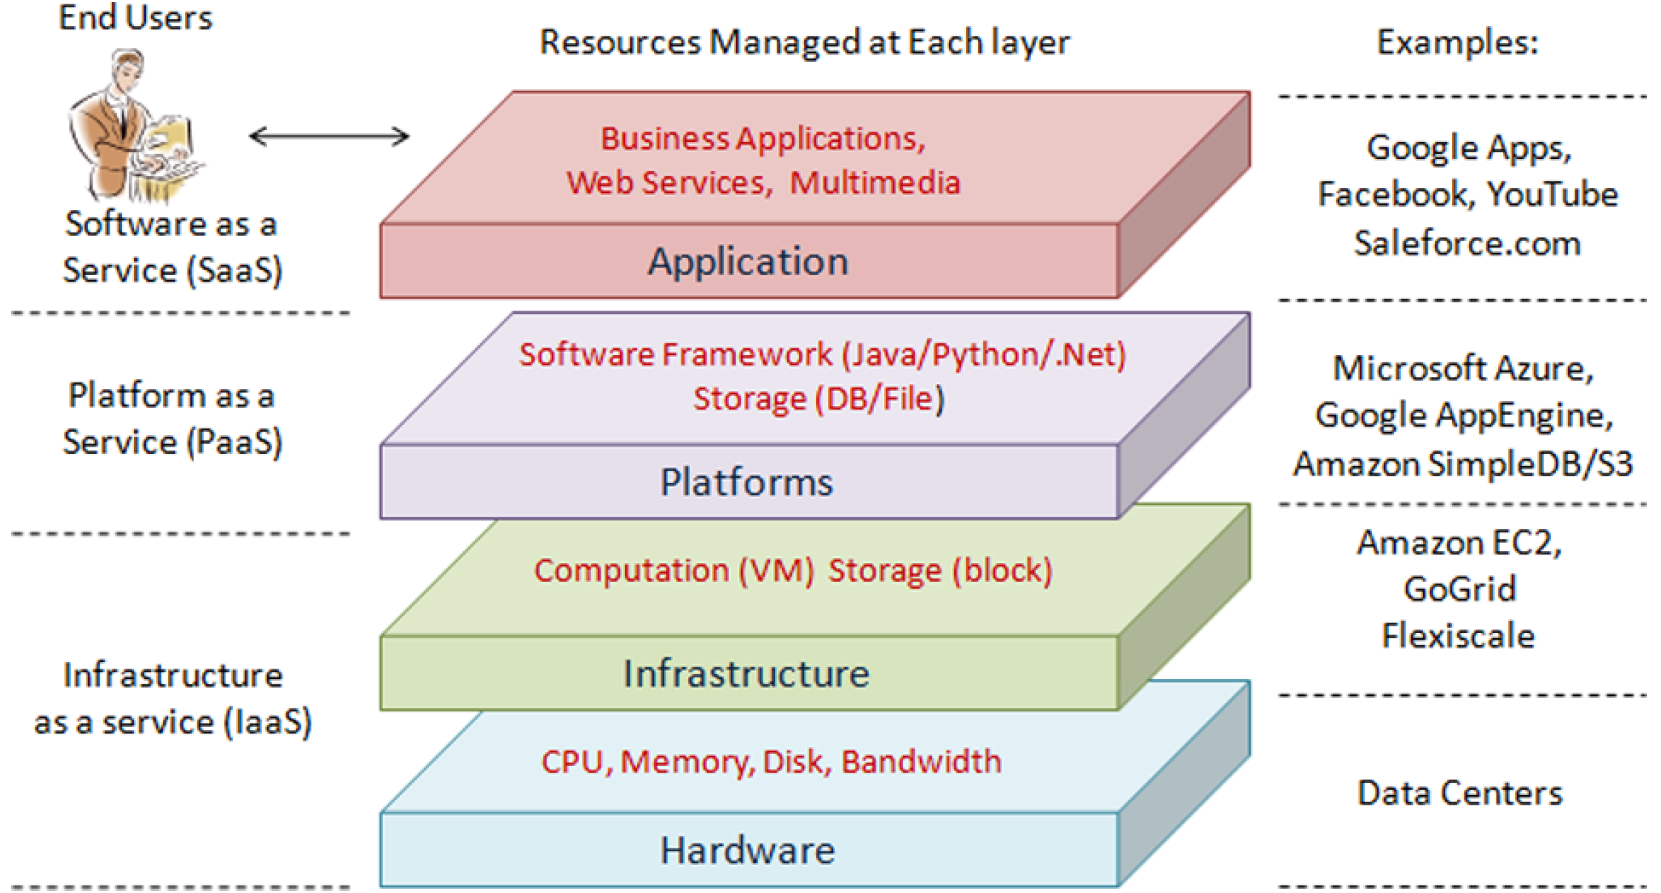 12 CHAPTER 2. CLOUD COMPUTING Figure 2.1: The architecture of a cloud system (from [173]). is a Service, and can be used in a pay-as-you-go modality.